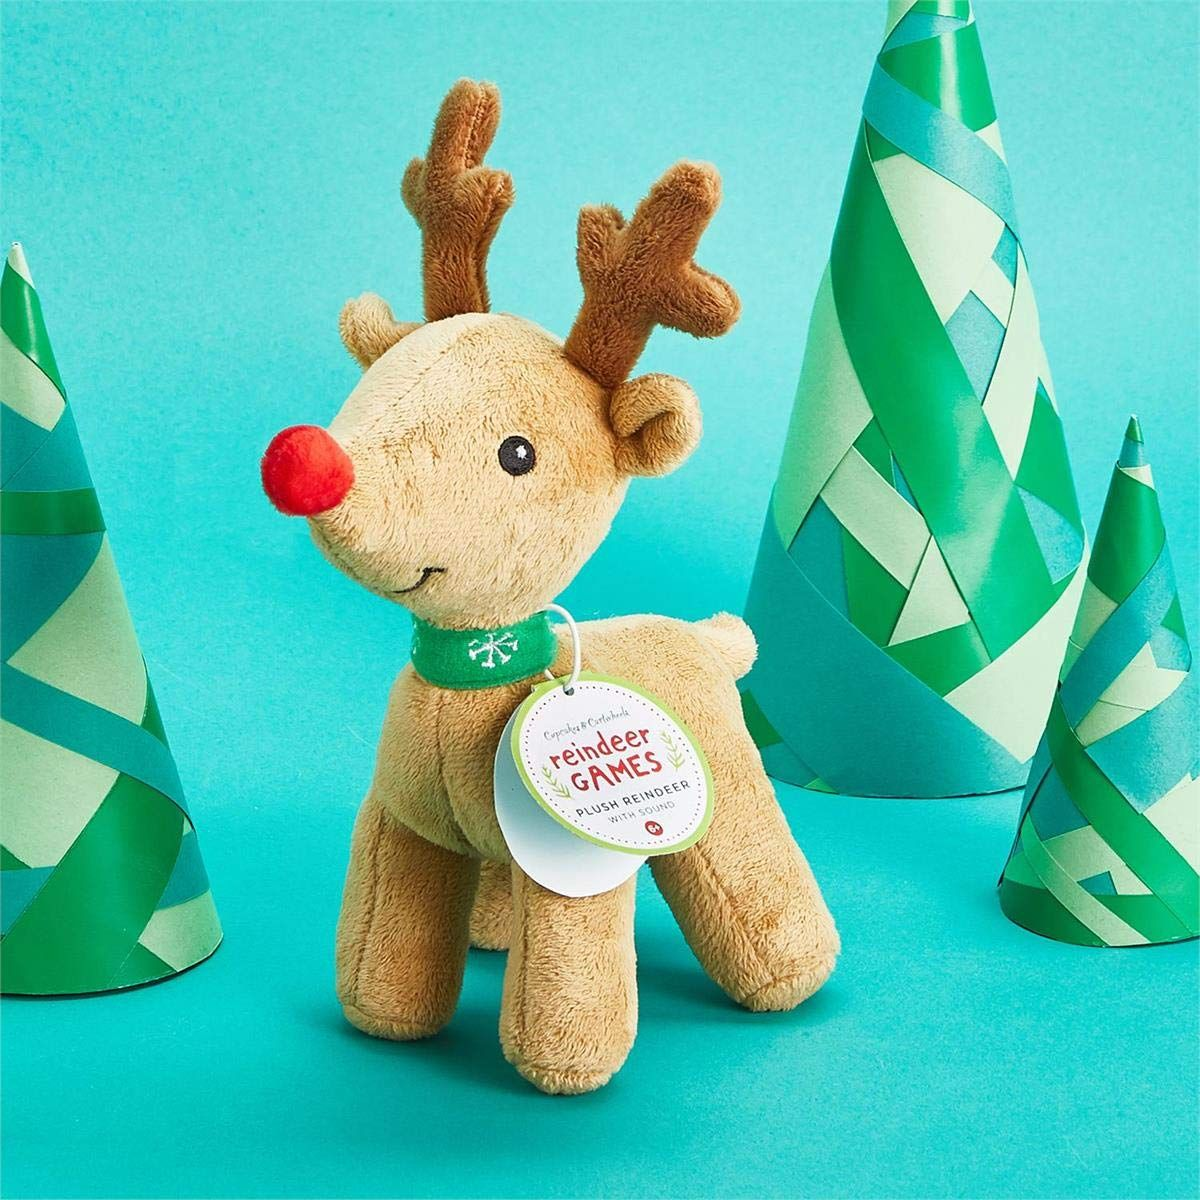 Light up plush reindeer with sound 3+